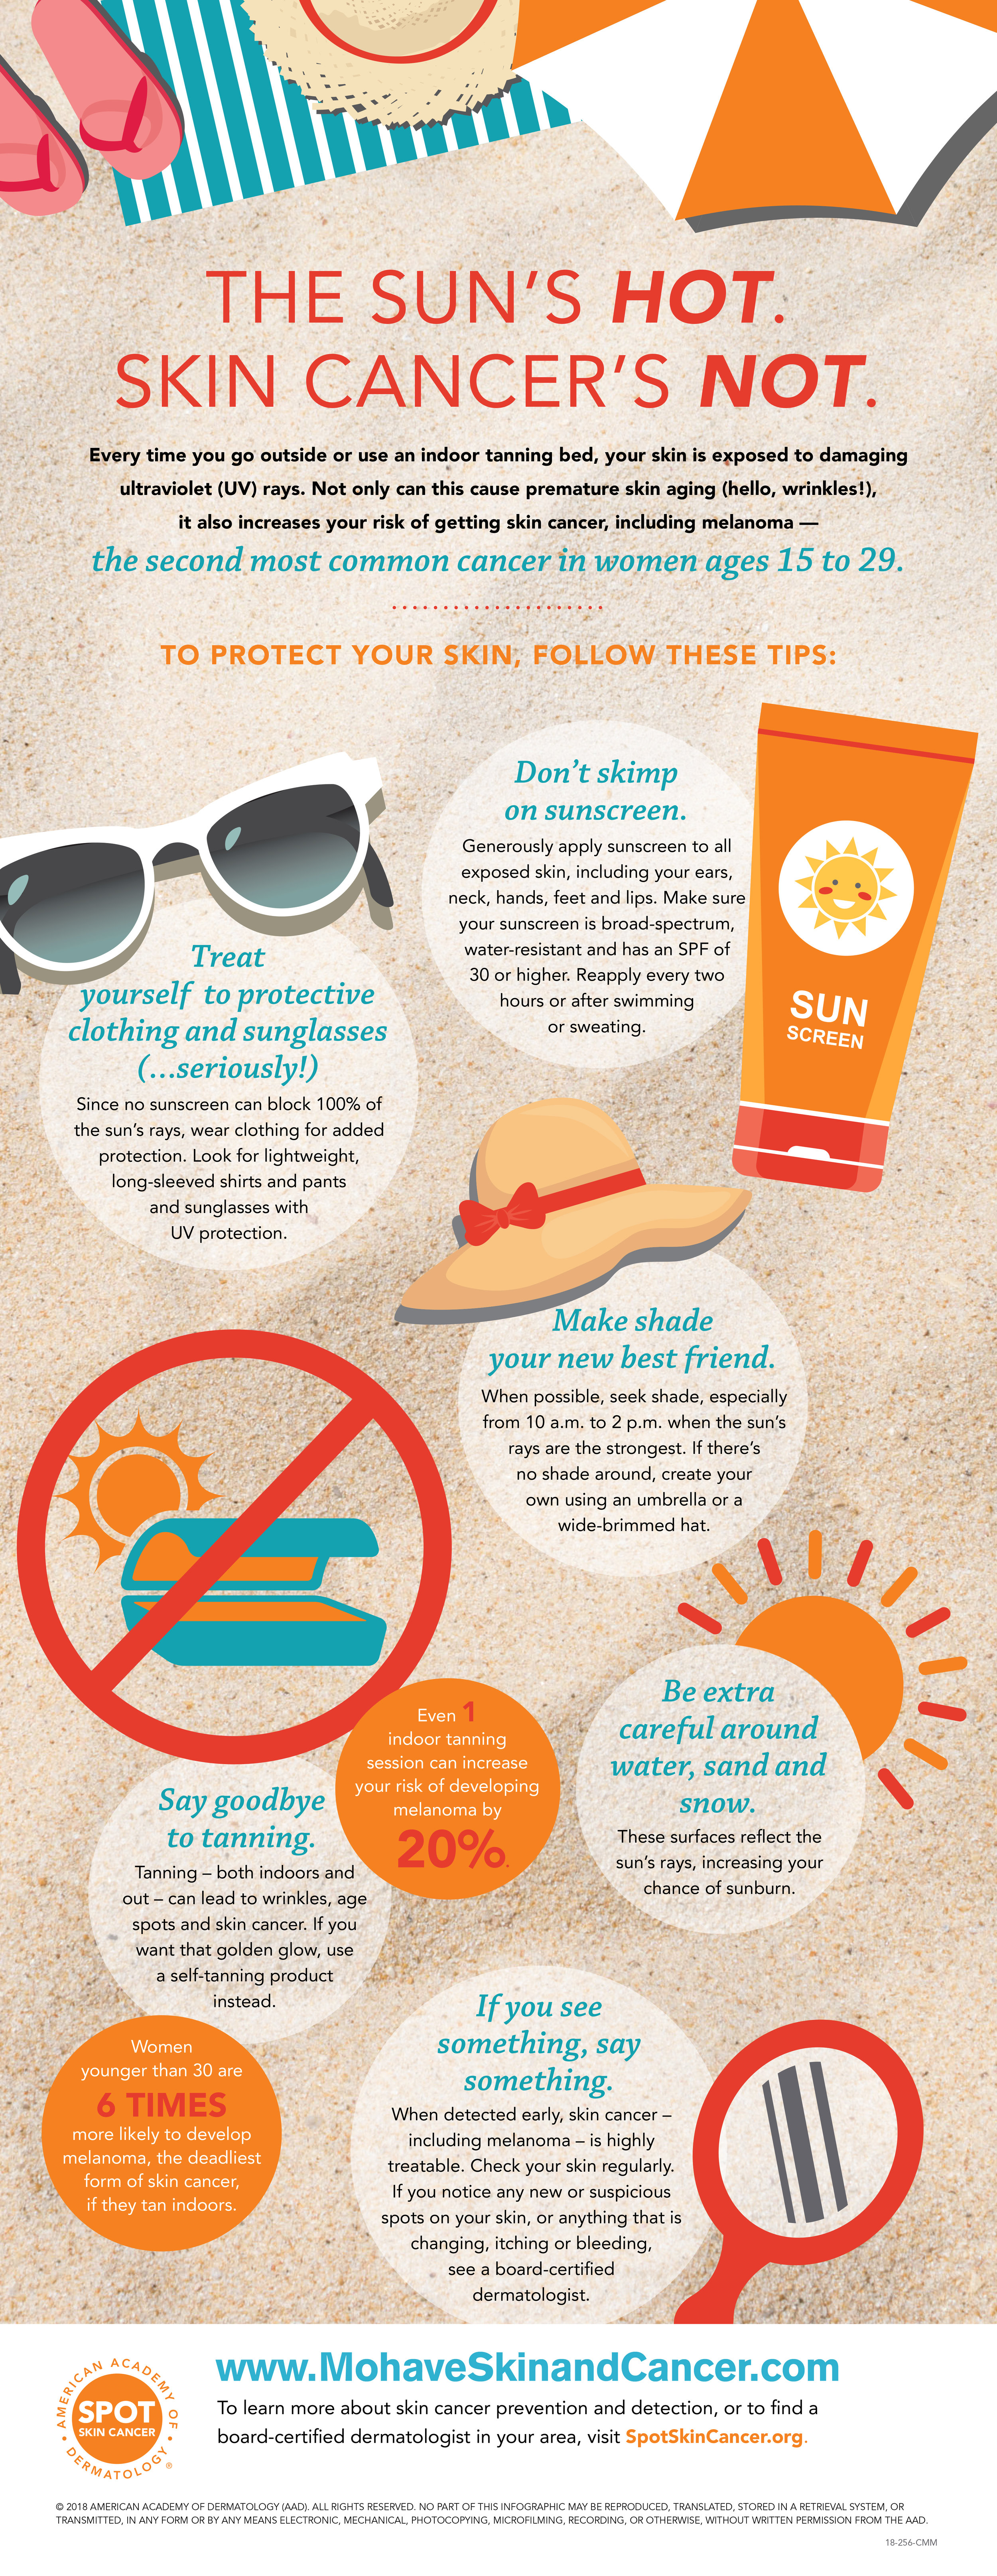 suns-hot-skin-cancers-not-infographic.jpg